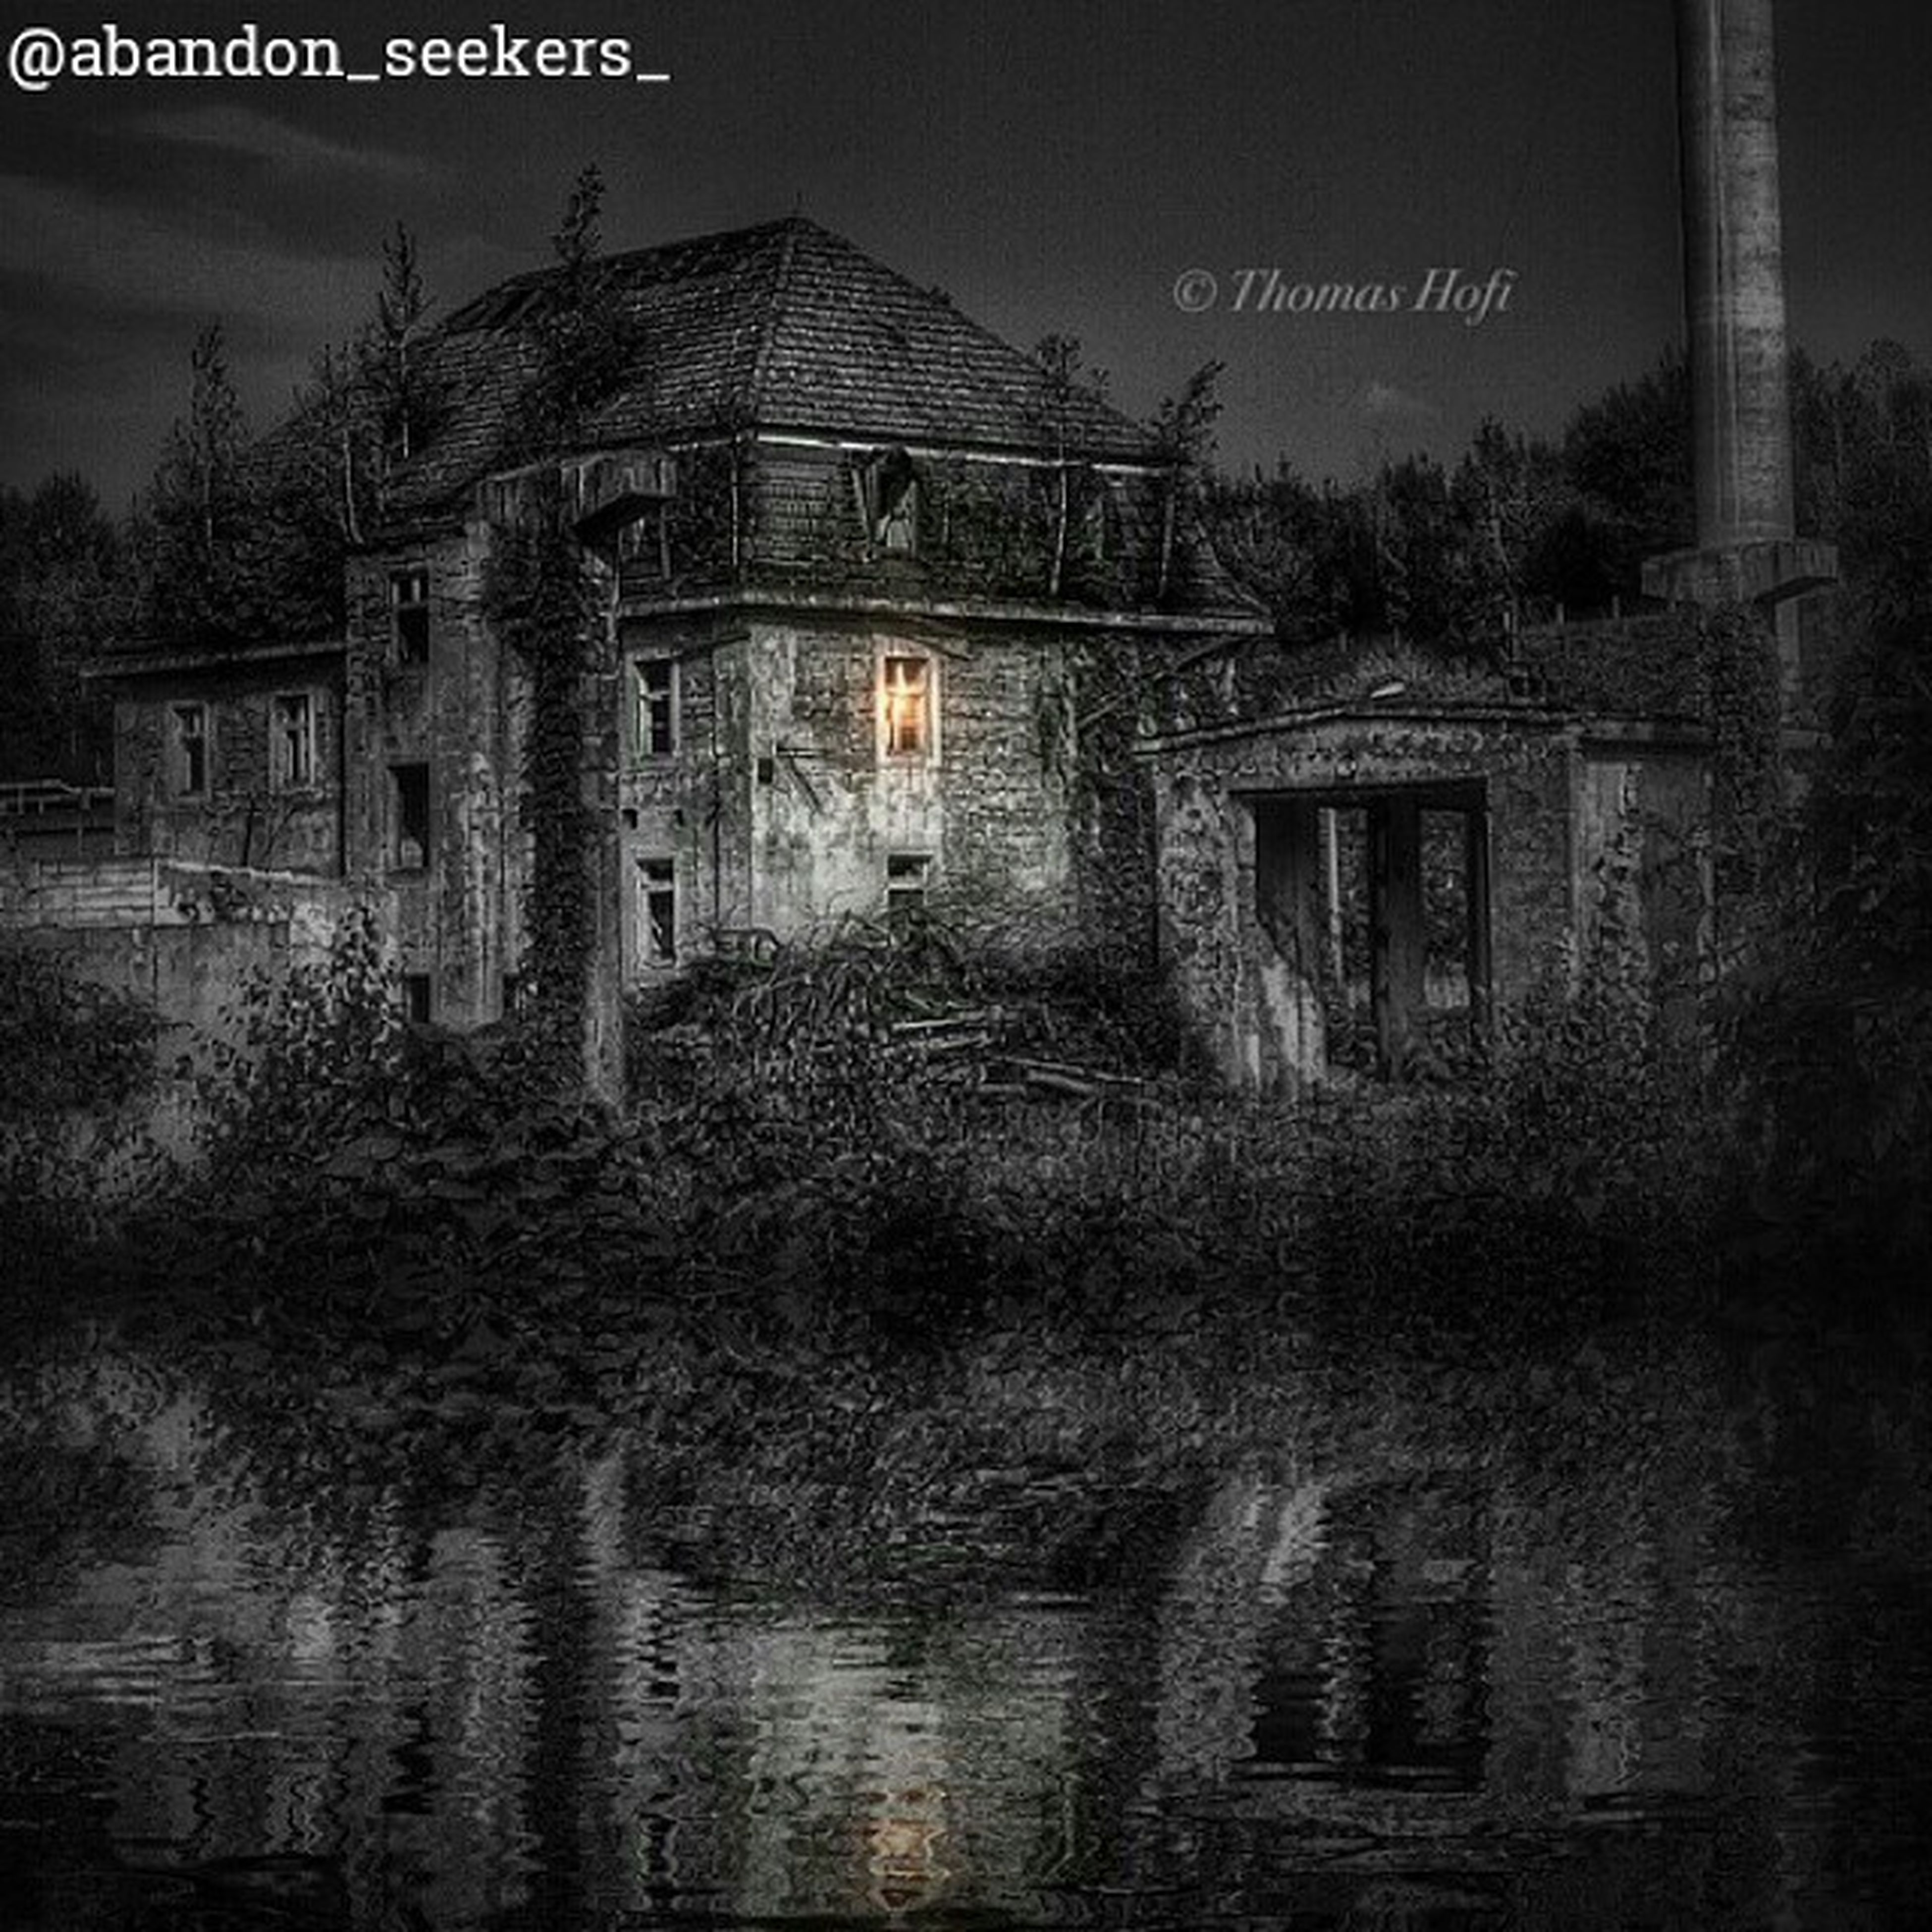 architecture, built structure, building exterior, house, sky, old, residential structure, building, residential building, abandoned, outdoors, window, history, no people, day, water, exterior, clear sky, tree, wall - building feature